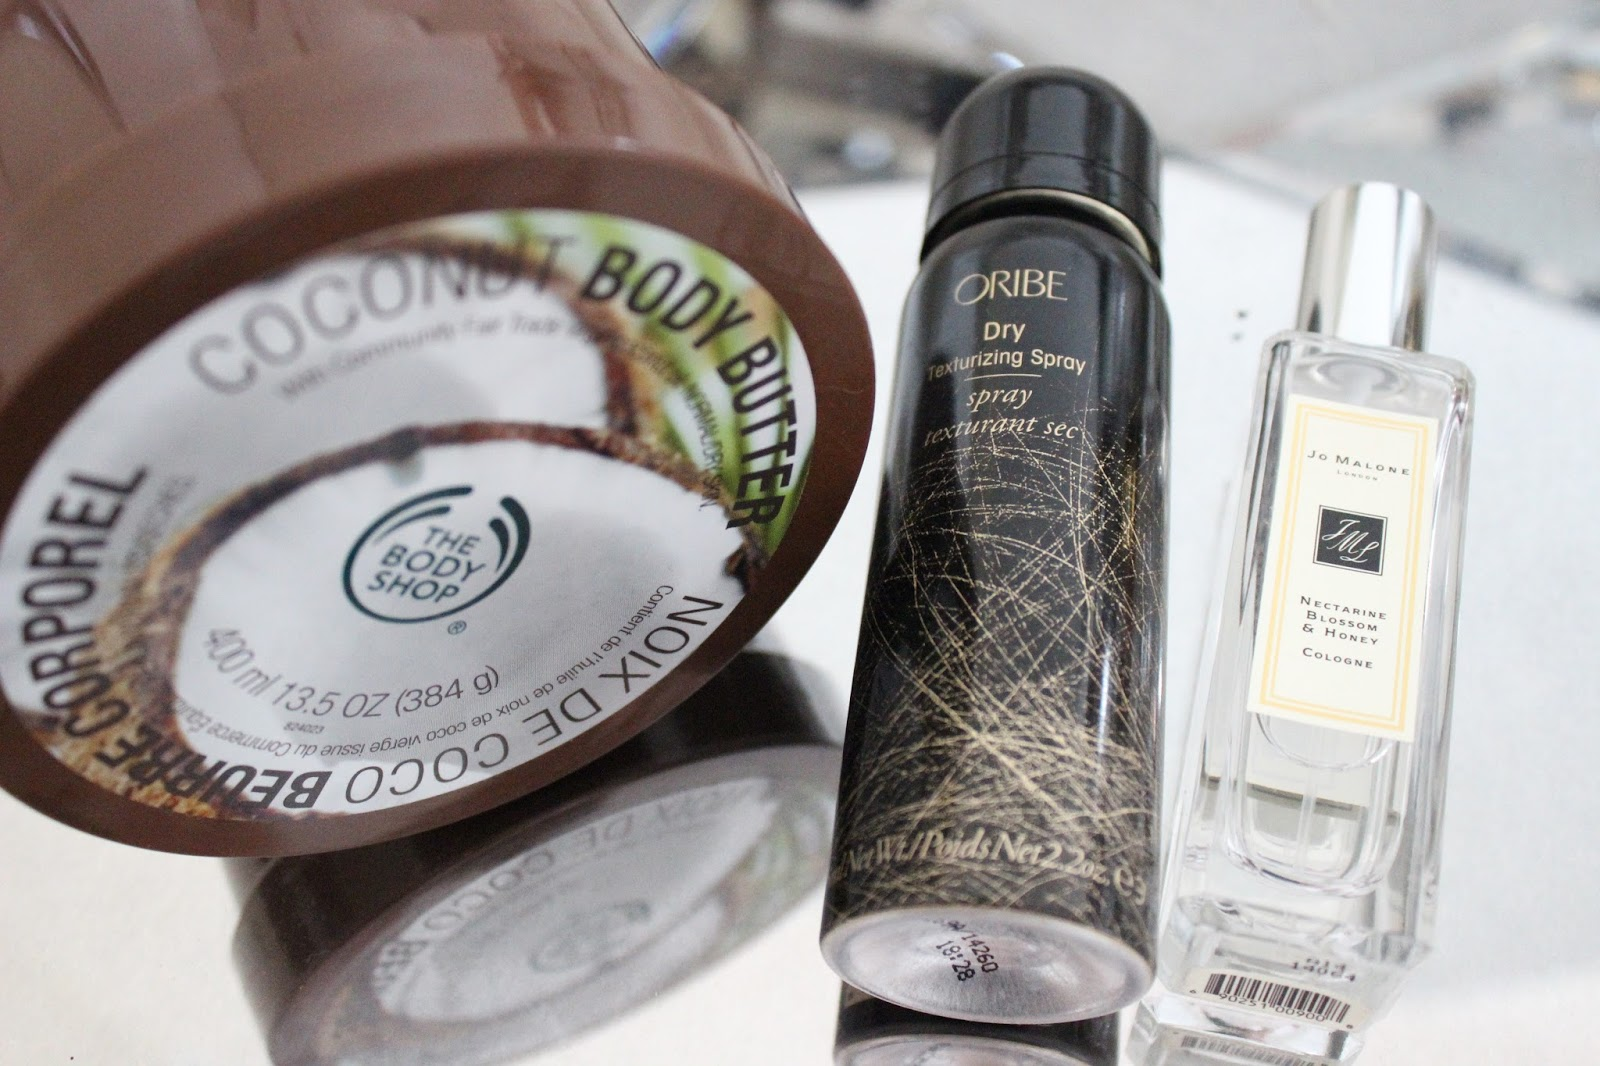 14 Top Beauty Favourites from 2014 - Body Shop Coconut Body Butter, Oribe Dry Texturising Spray, Jo Malone Nectarine Blossom & Honey Cologne